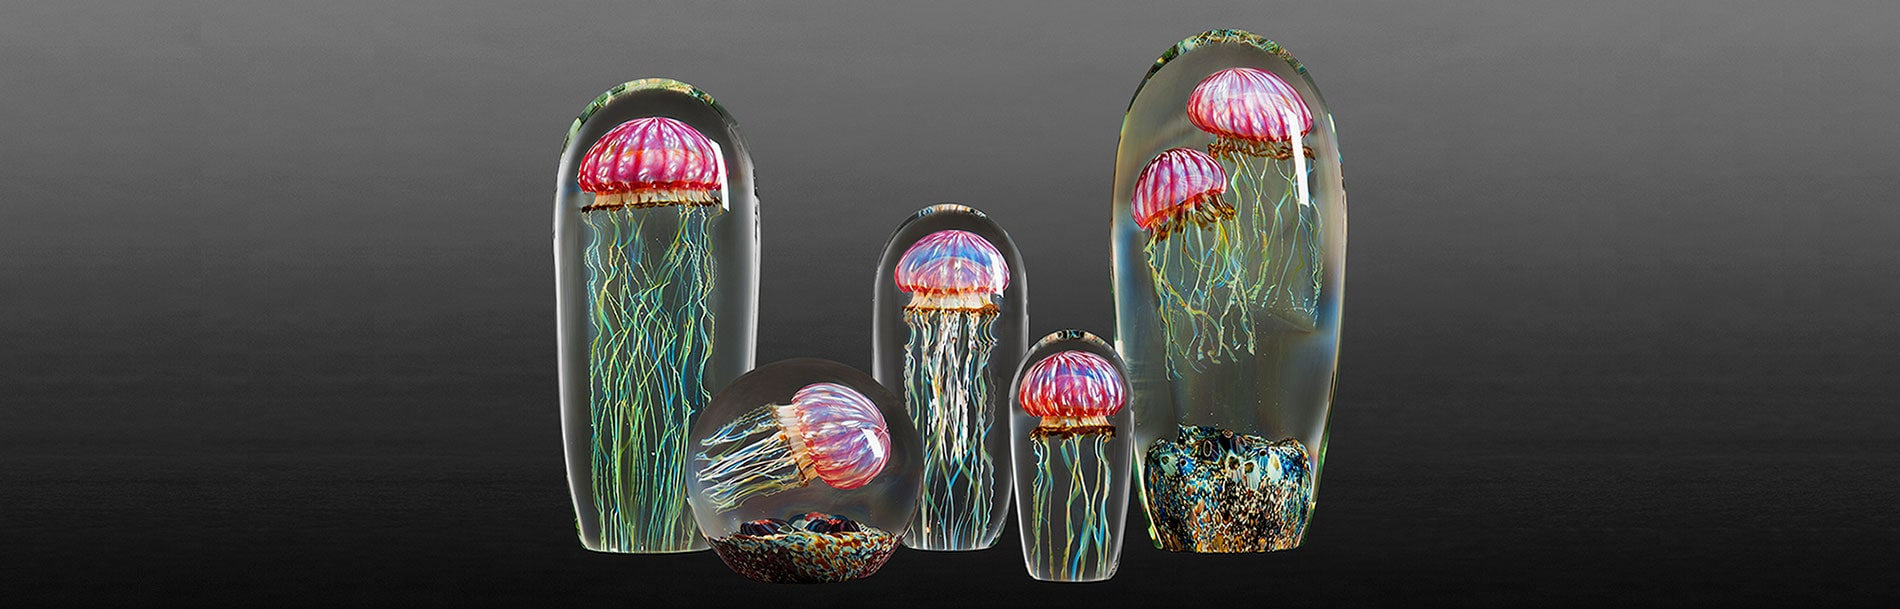 Jellyfish collections